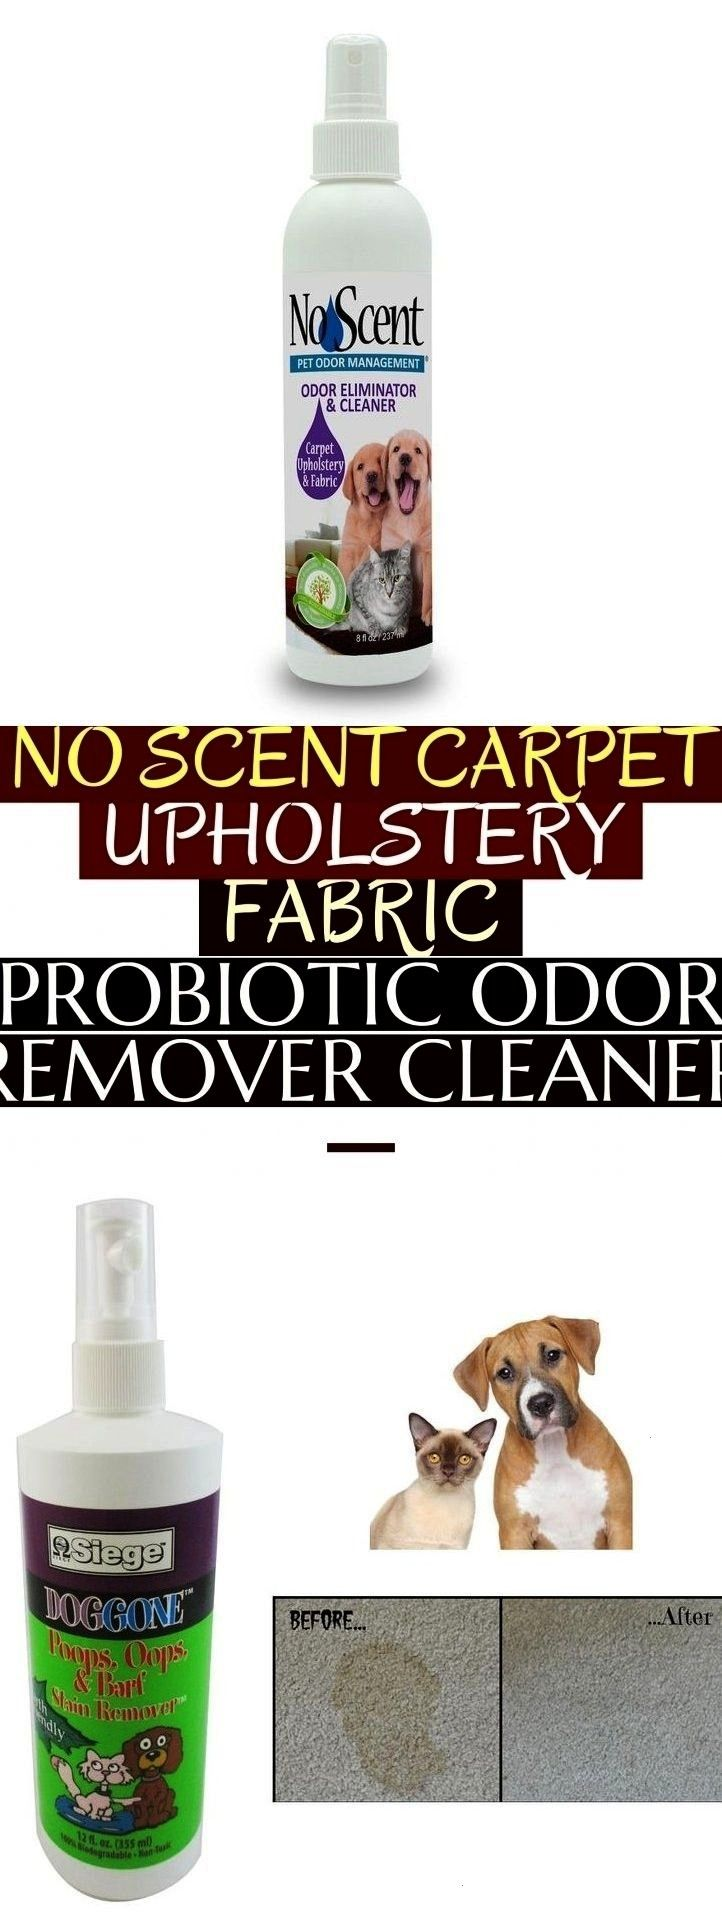 Scent Carpet Upholstery Fabric Probiotic Odor Remover Cleaner   No Scent Carpet Upholstery Fabric Probiotic Odor Remover Cleaner   no scent carpNo Scent Carpet Upholstery...